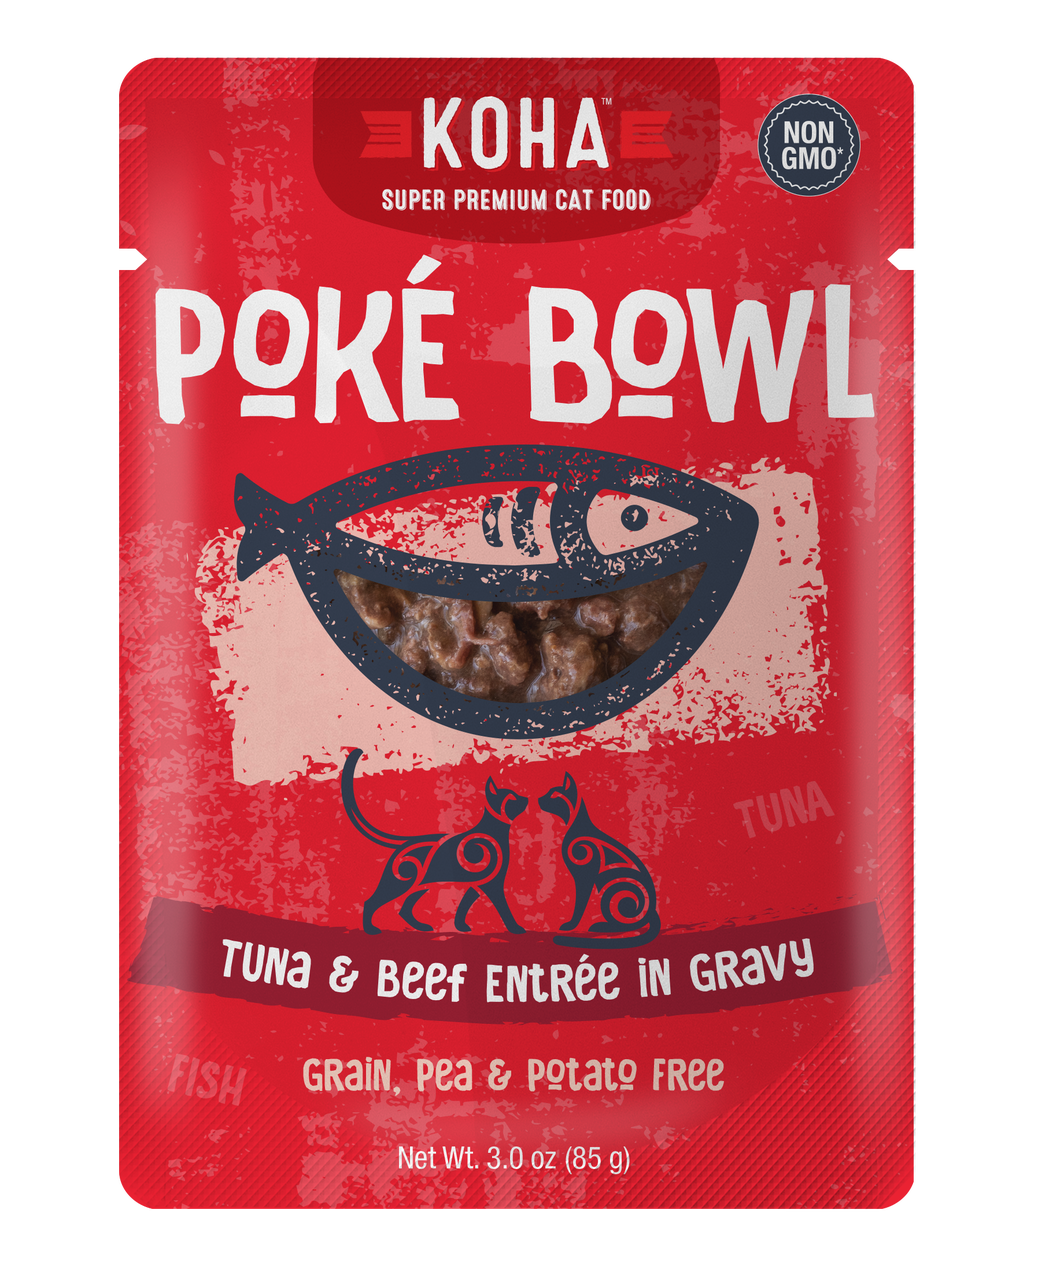 Koha Poke Bowl Tuna & Beef Entrée in Gravy Wet Cat Food, 3-oz pouch